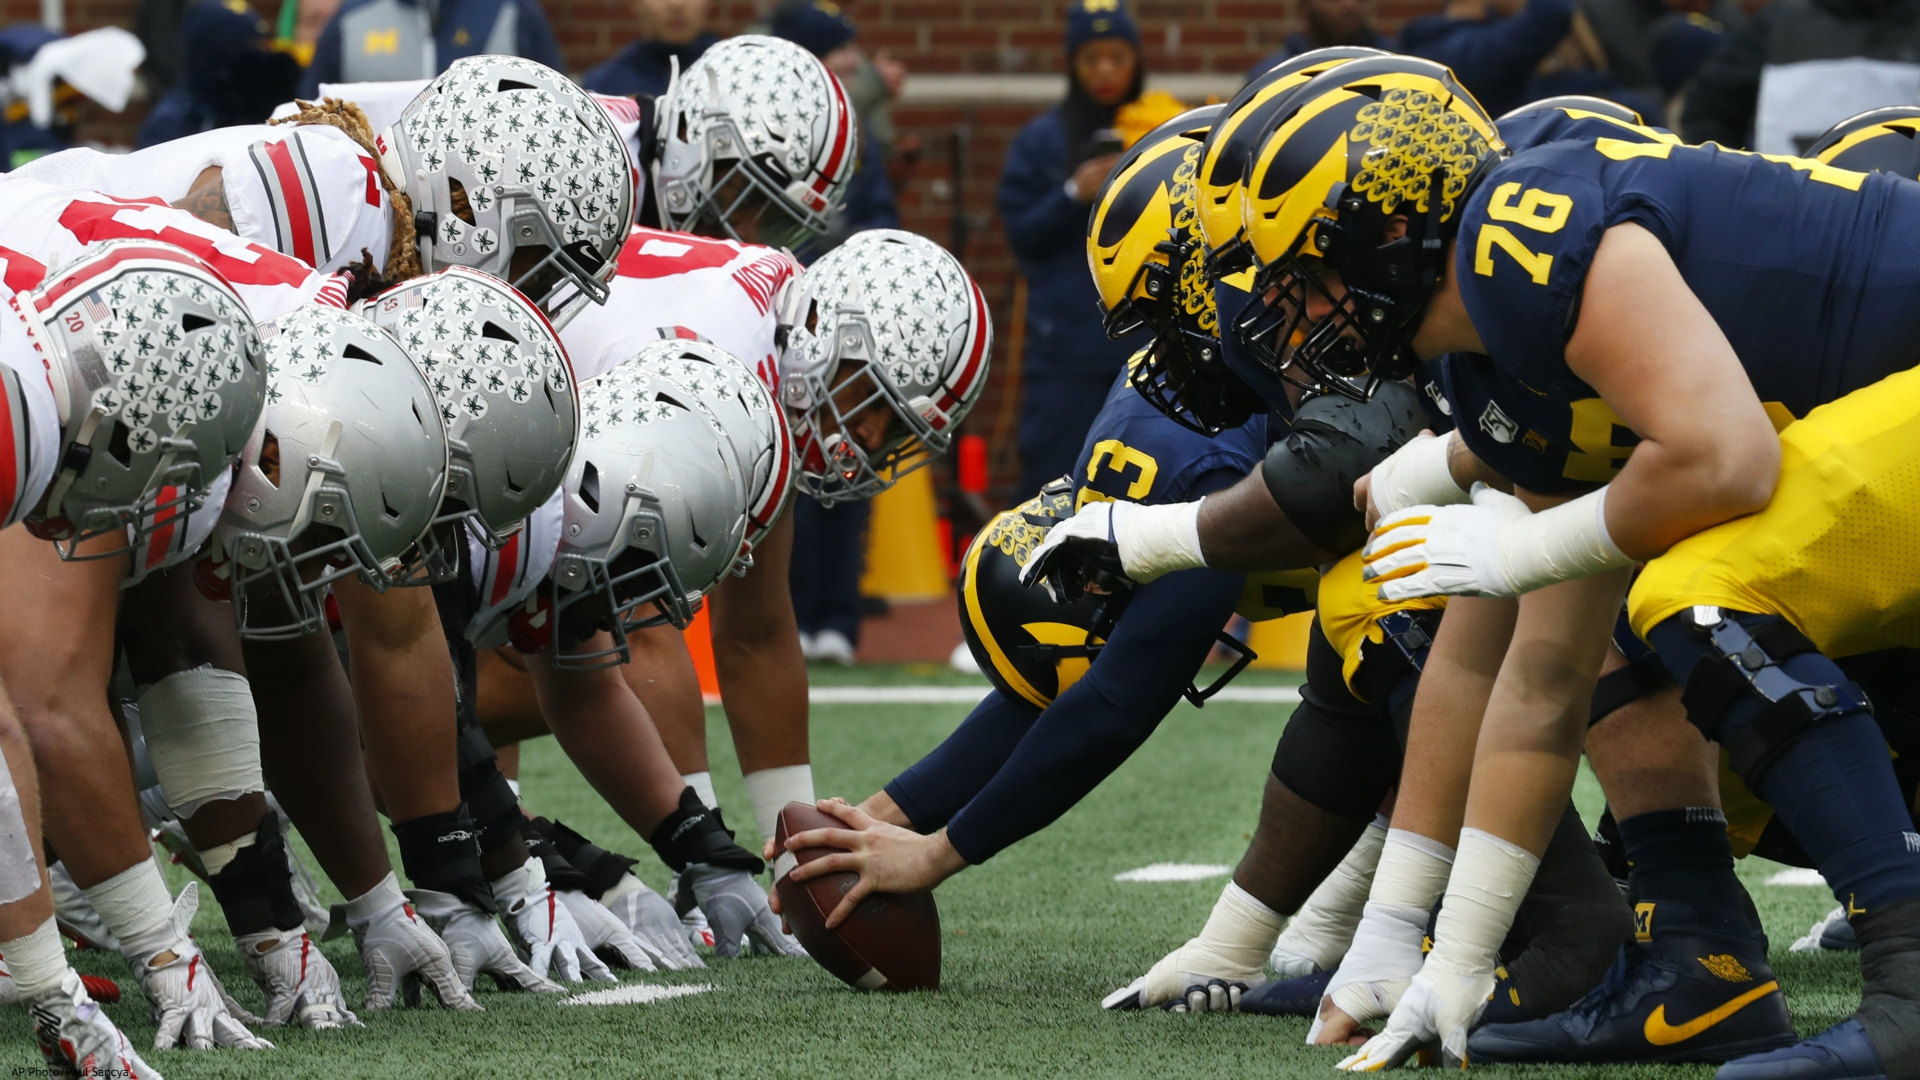 In this Nov. 30, 2019, file photo, Ohio State, left, and Michigan players line up at the line of scrimmage in the first half of an NCAA college football game in Ann Arbor, Mich. The Big Ten's third football schedule of the 2020 season is highlighted by Michigan-Ohio State on Dec. 12, the final day of the conference's regular-season and the latest date the rivals have ever played.(AP Photo/Paul Sancya, File)